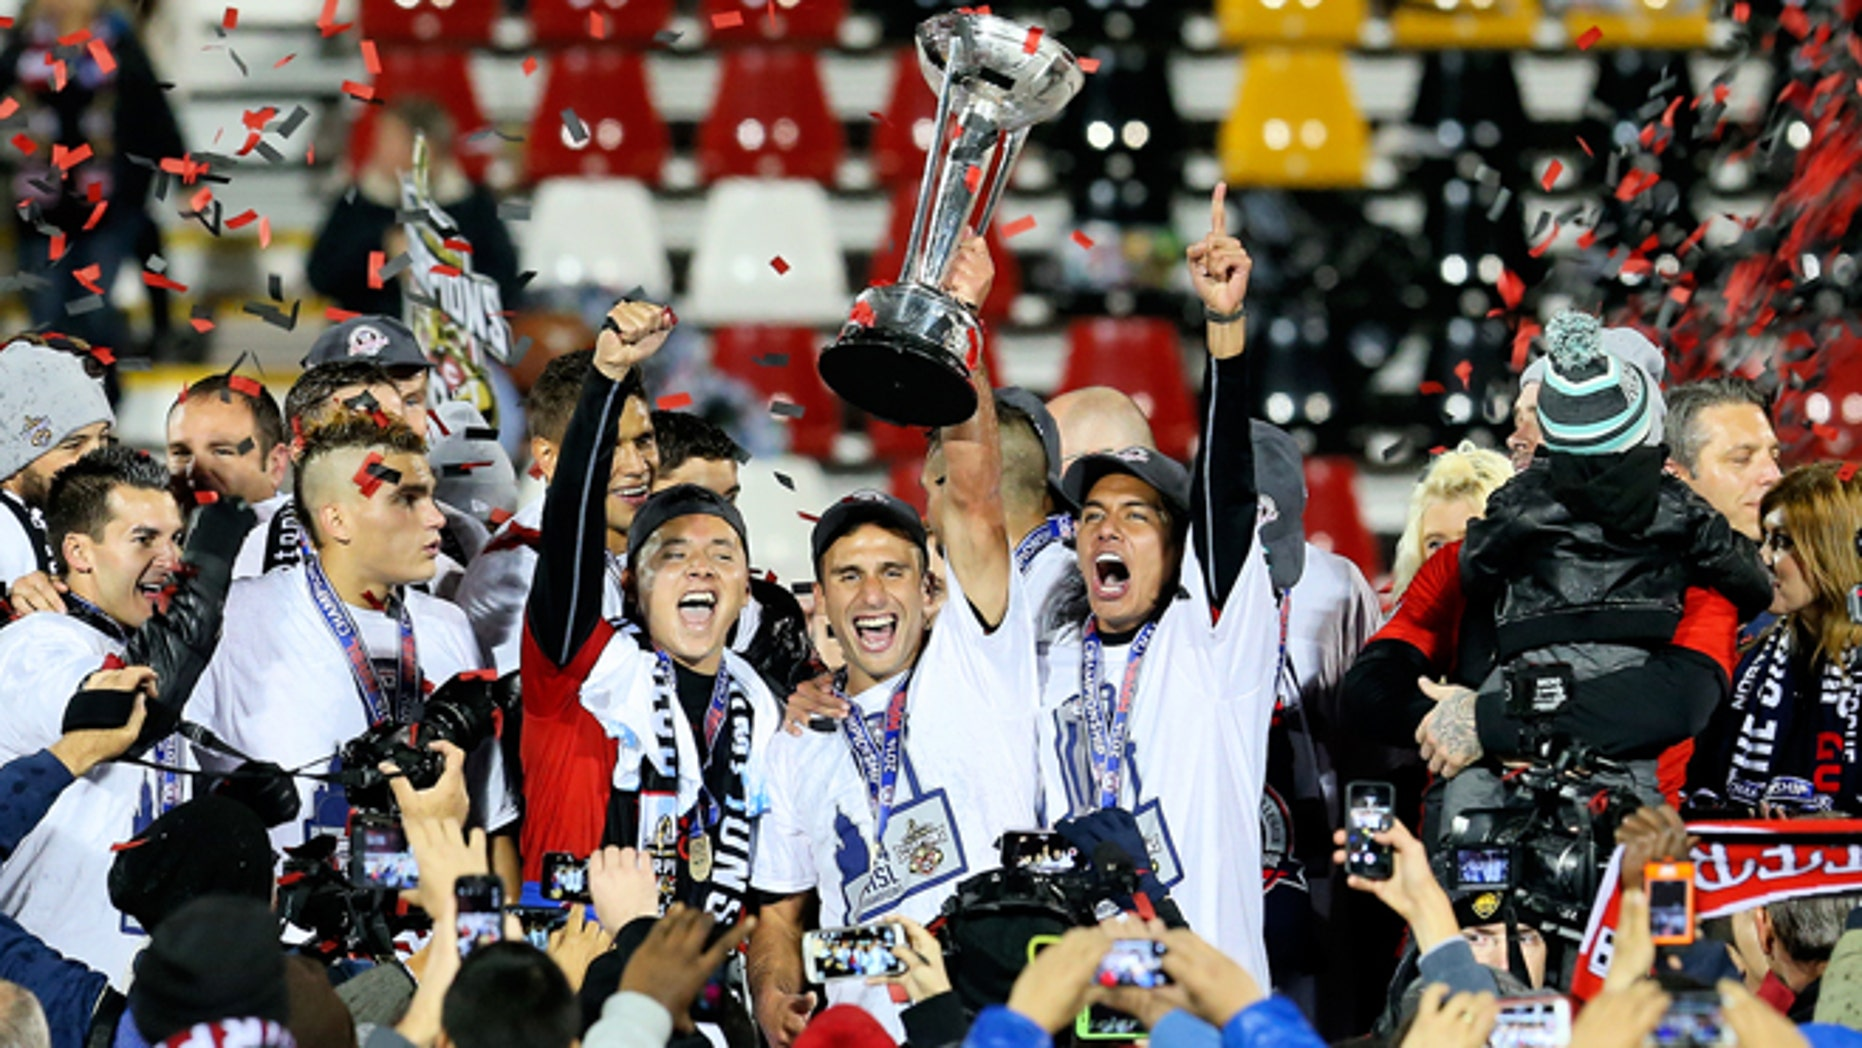 San Antonio Scorpions celebrate their 2014 NASL championship. (Photo: Courtesy NASL)